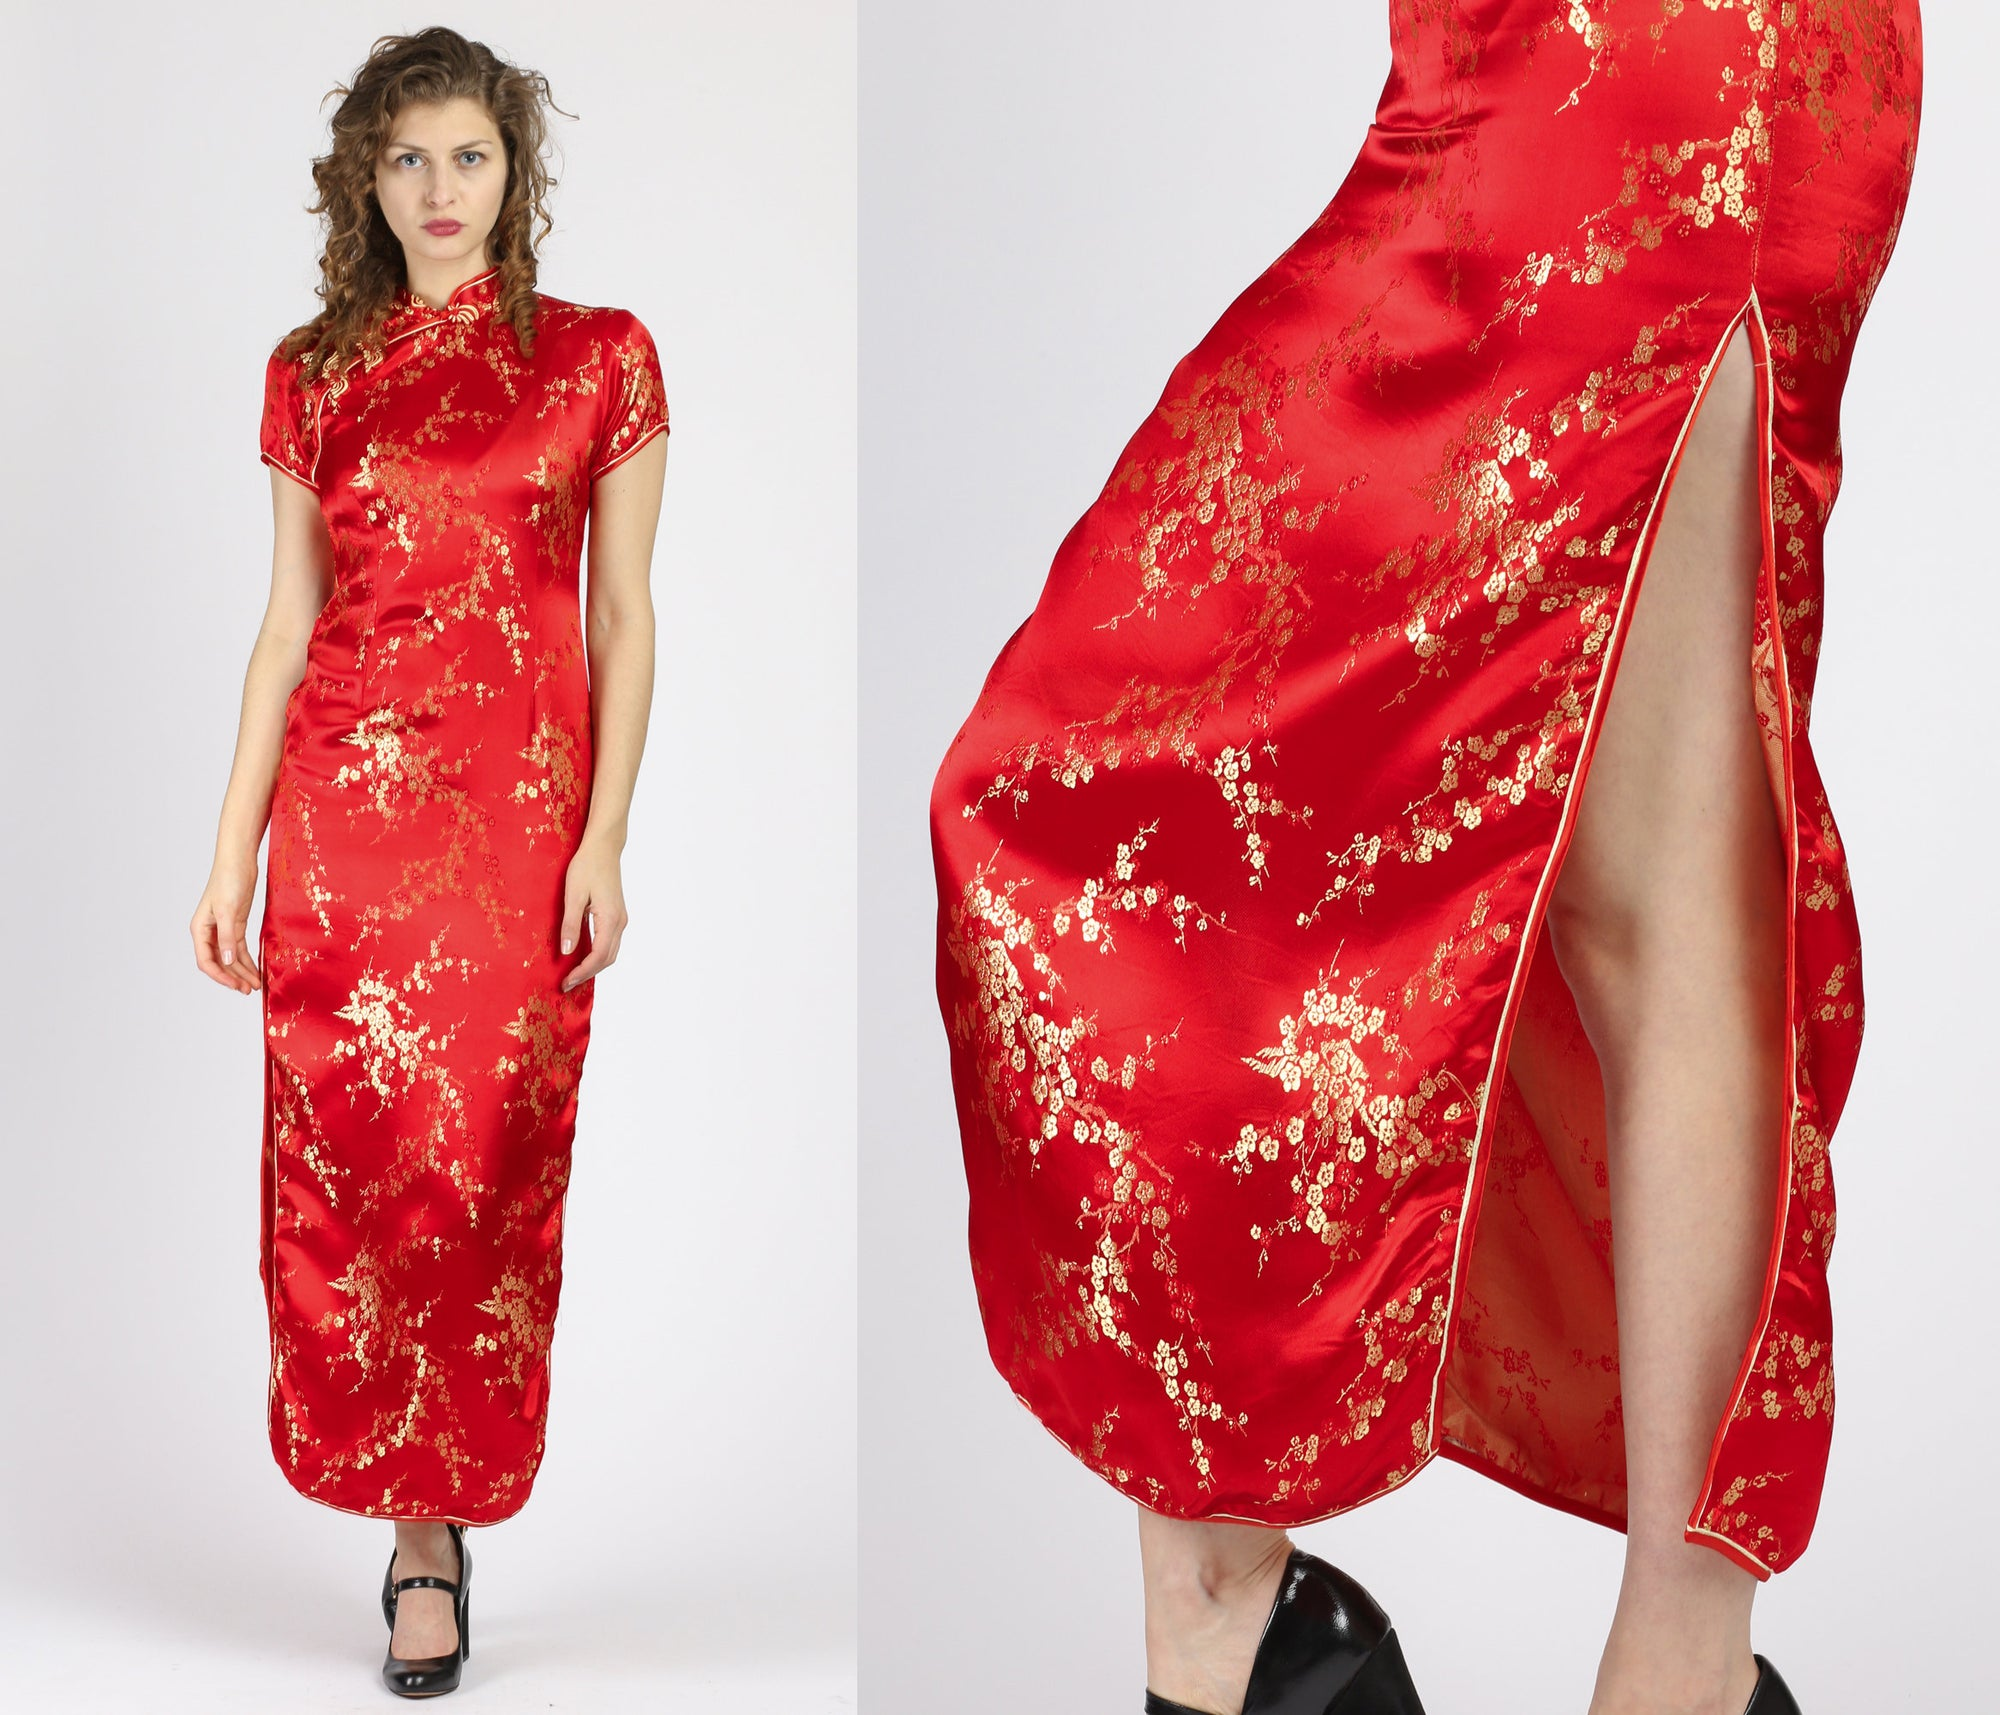 Vintage Red Cheongsam Maxi Dress - XS to Small